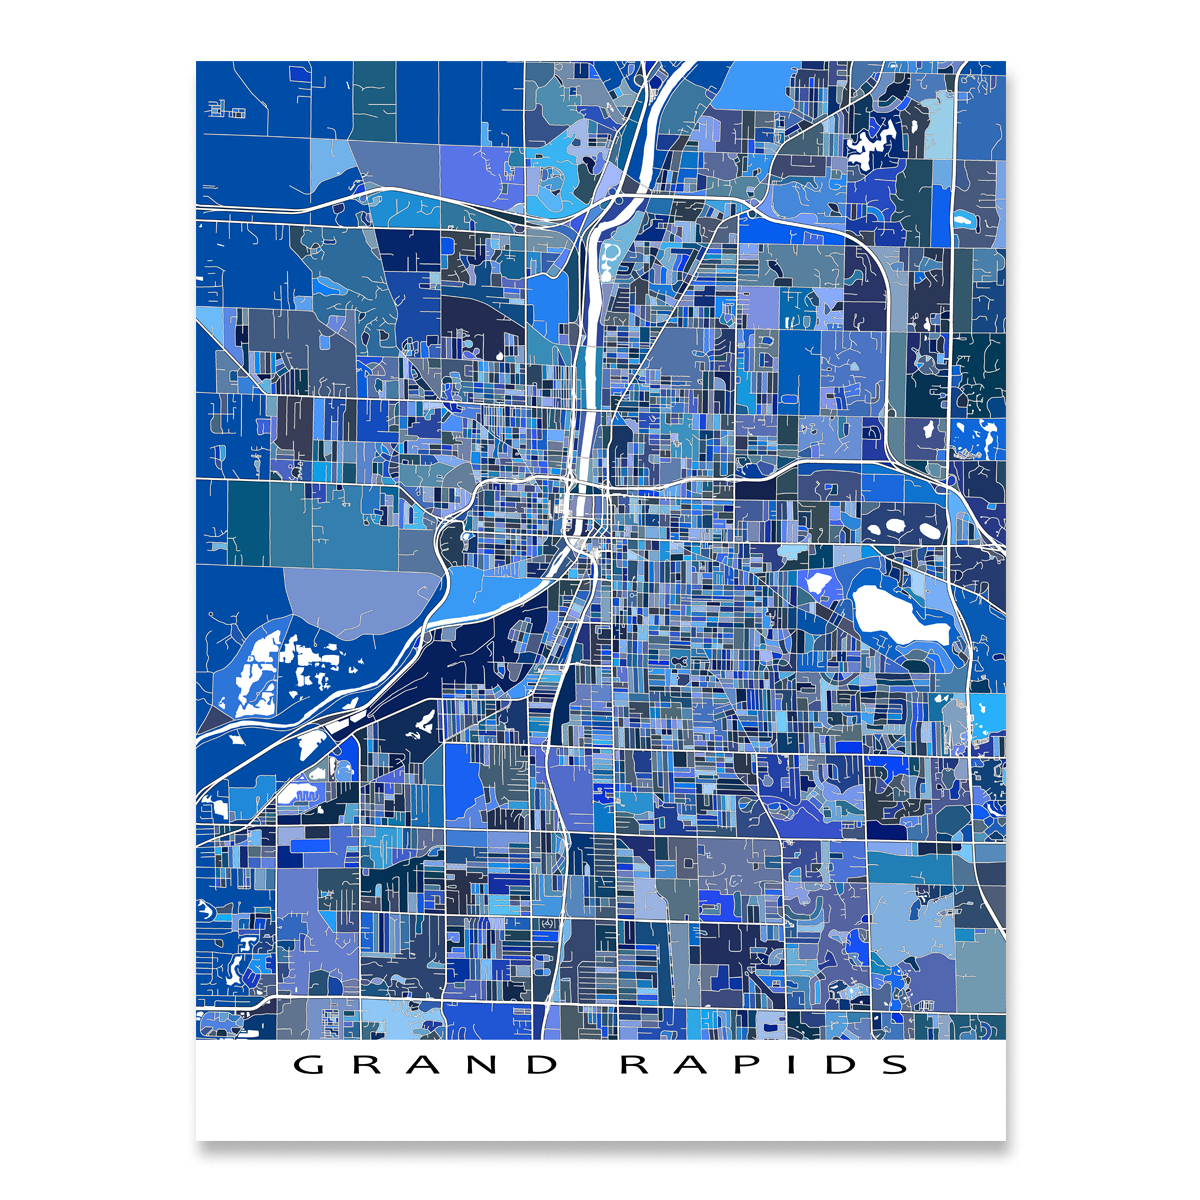 Grand Rapids Map Print, Michigan, USA on people of michigan, saginaw michigan, state parks upper peninsula michigan, thumb of michigan, northern michigan, white lake michigan, ellsworth michigan, major cities in michigan, all cities in michigan, battle creek michigan, lower peninsula of michigan, branch county michigan, tawas point lighthouse michigan, largest inland lake in michigan, shape of michigan, silver lake michigan, lansing michigan, troy michigan, wildlife of michigan, allenton michigan,